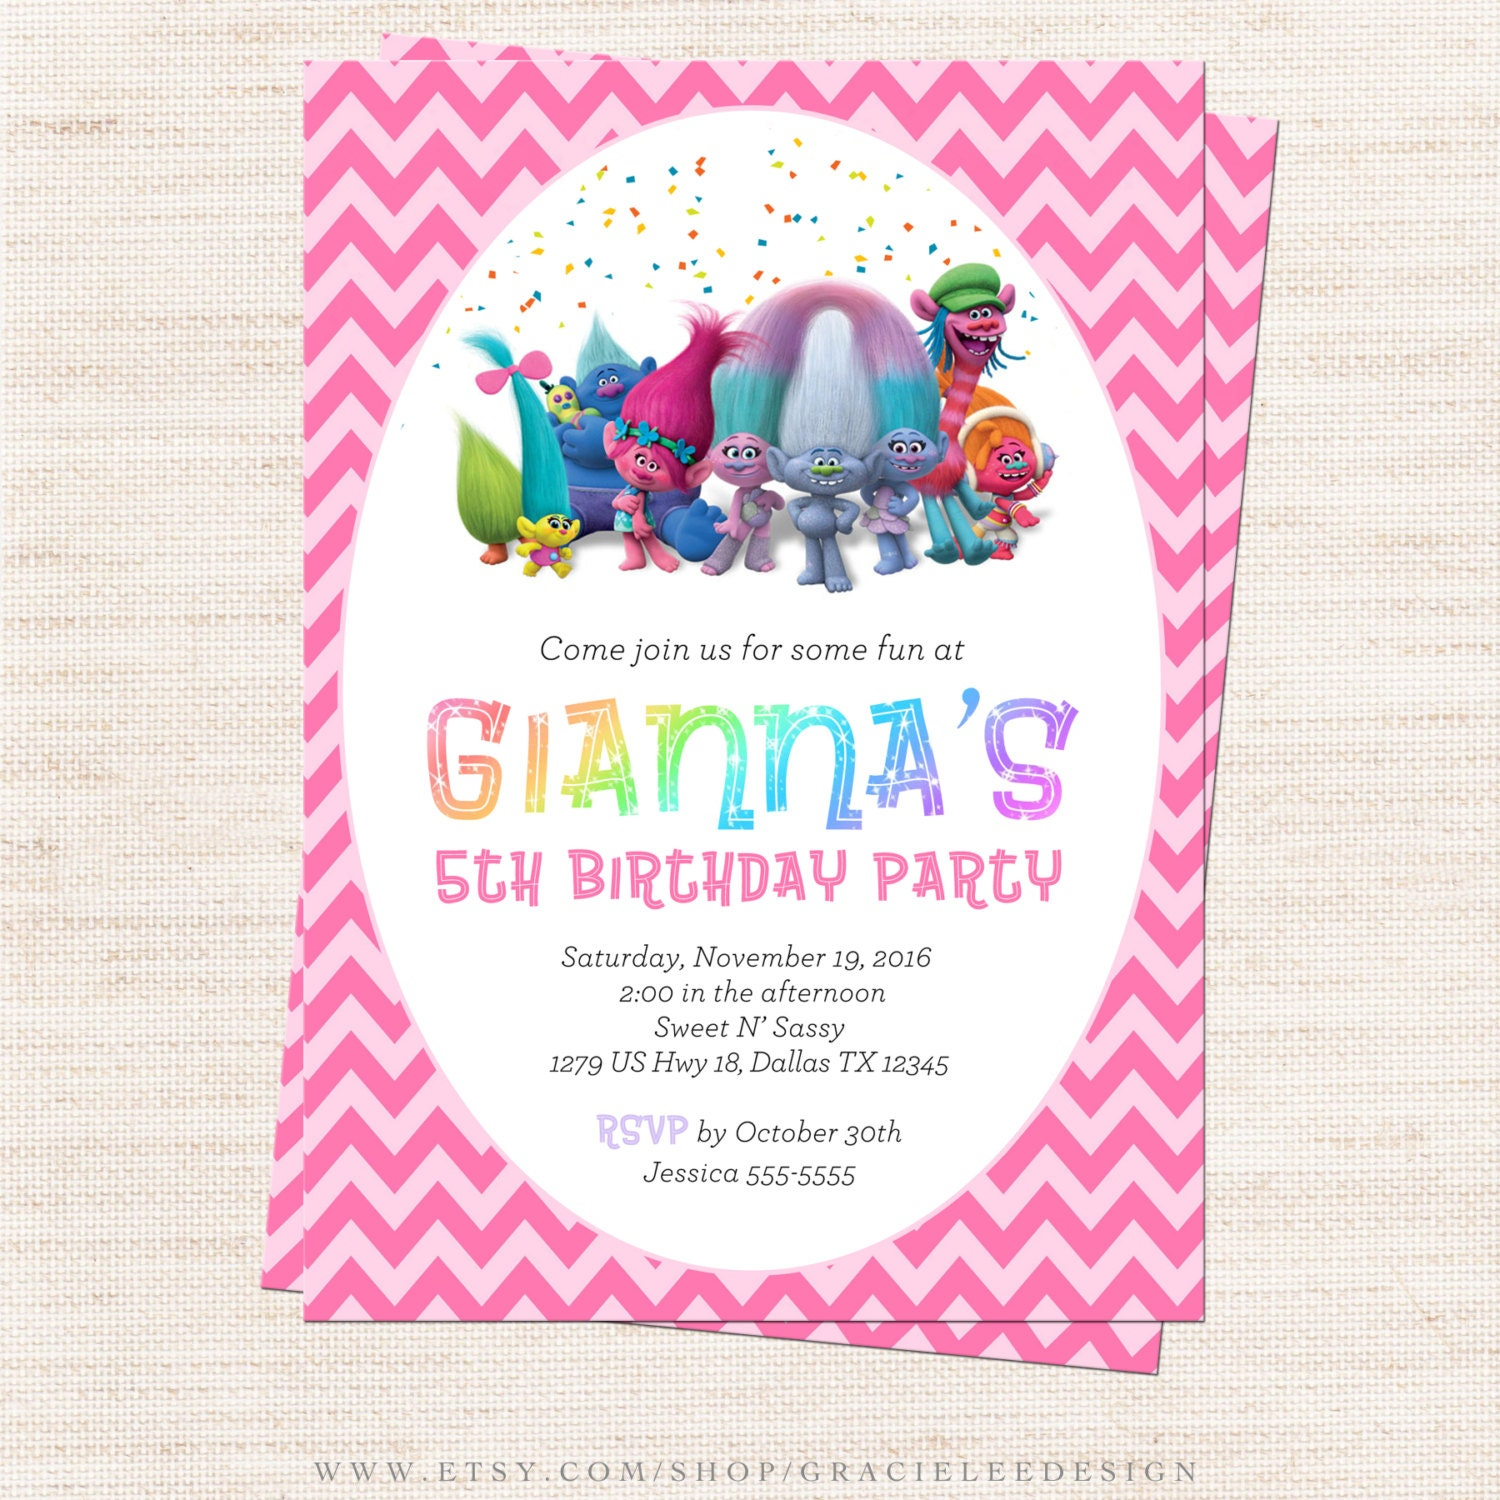 num nom inspired invitation num nom invitation printable trolls inspired birthday party invitation trolls rainbow party invitation printable girl birthday gracie lee design